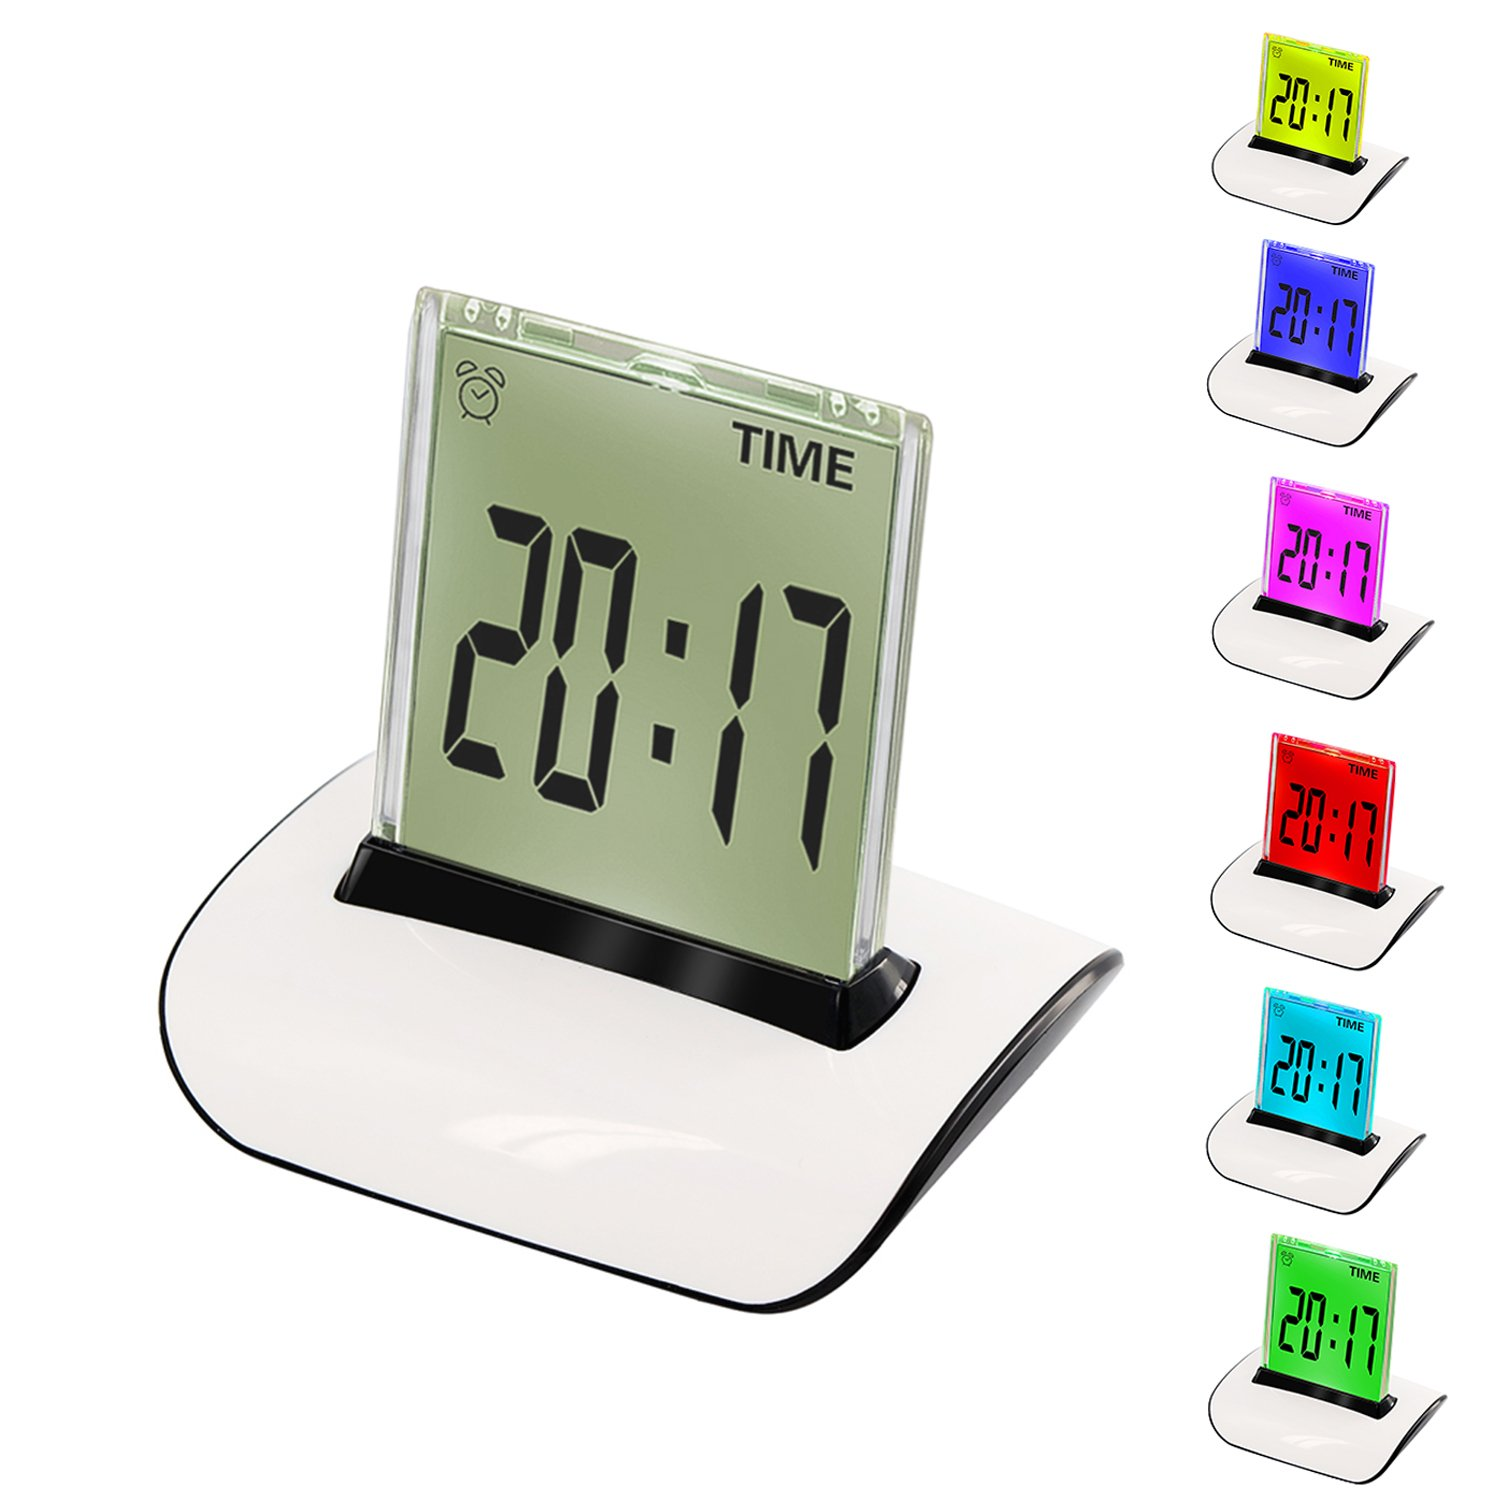 CIGERA Alarm Clocks for Bedroom with 7 Color Changing Wake-Up Light,Indoor Temperature,Calendar,Snooze and Timer,Battery Operated